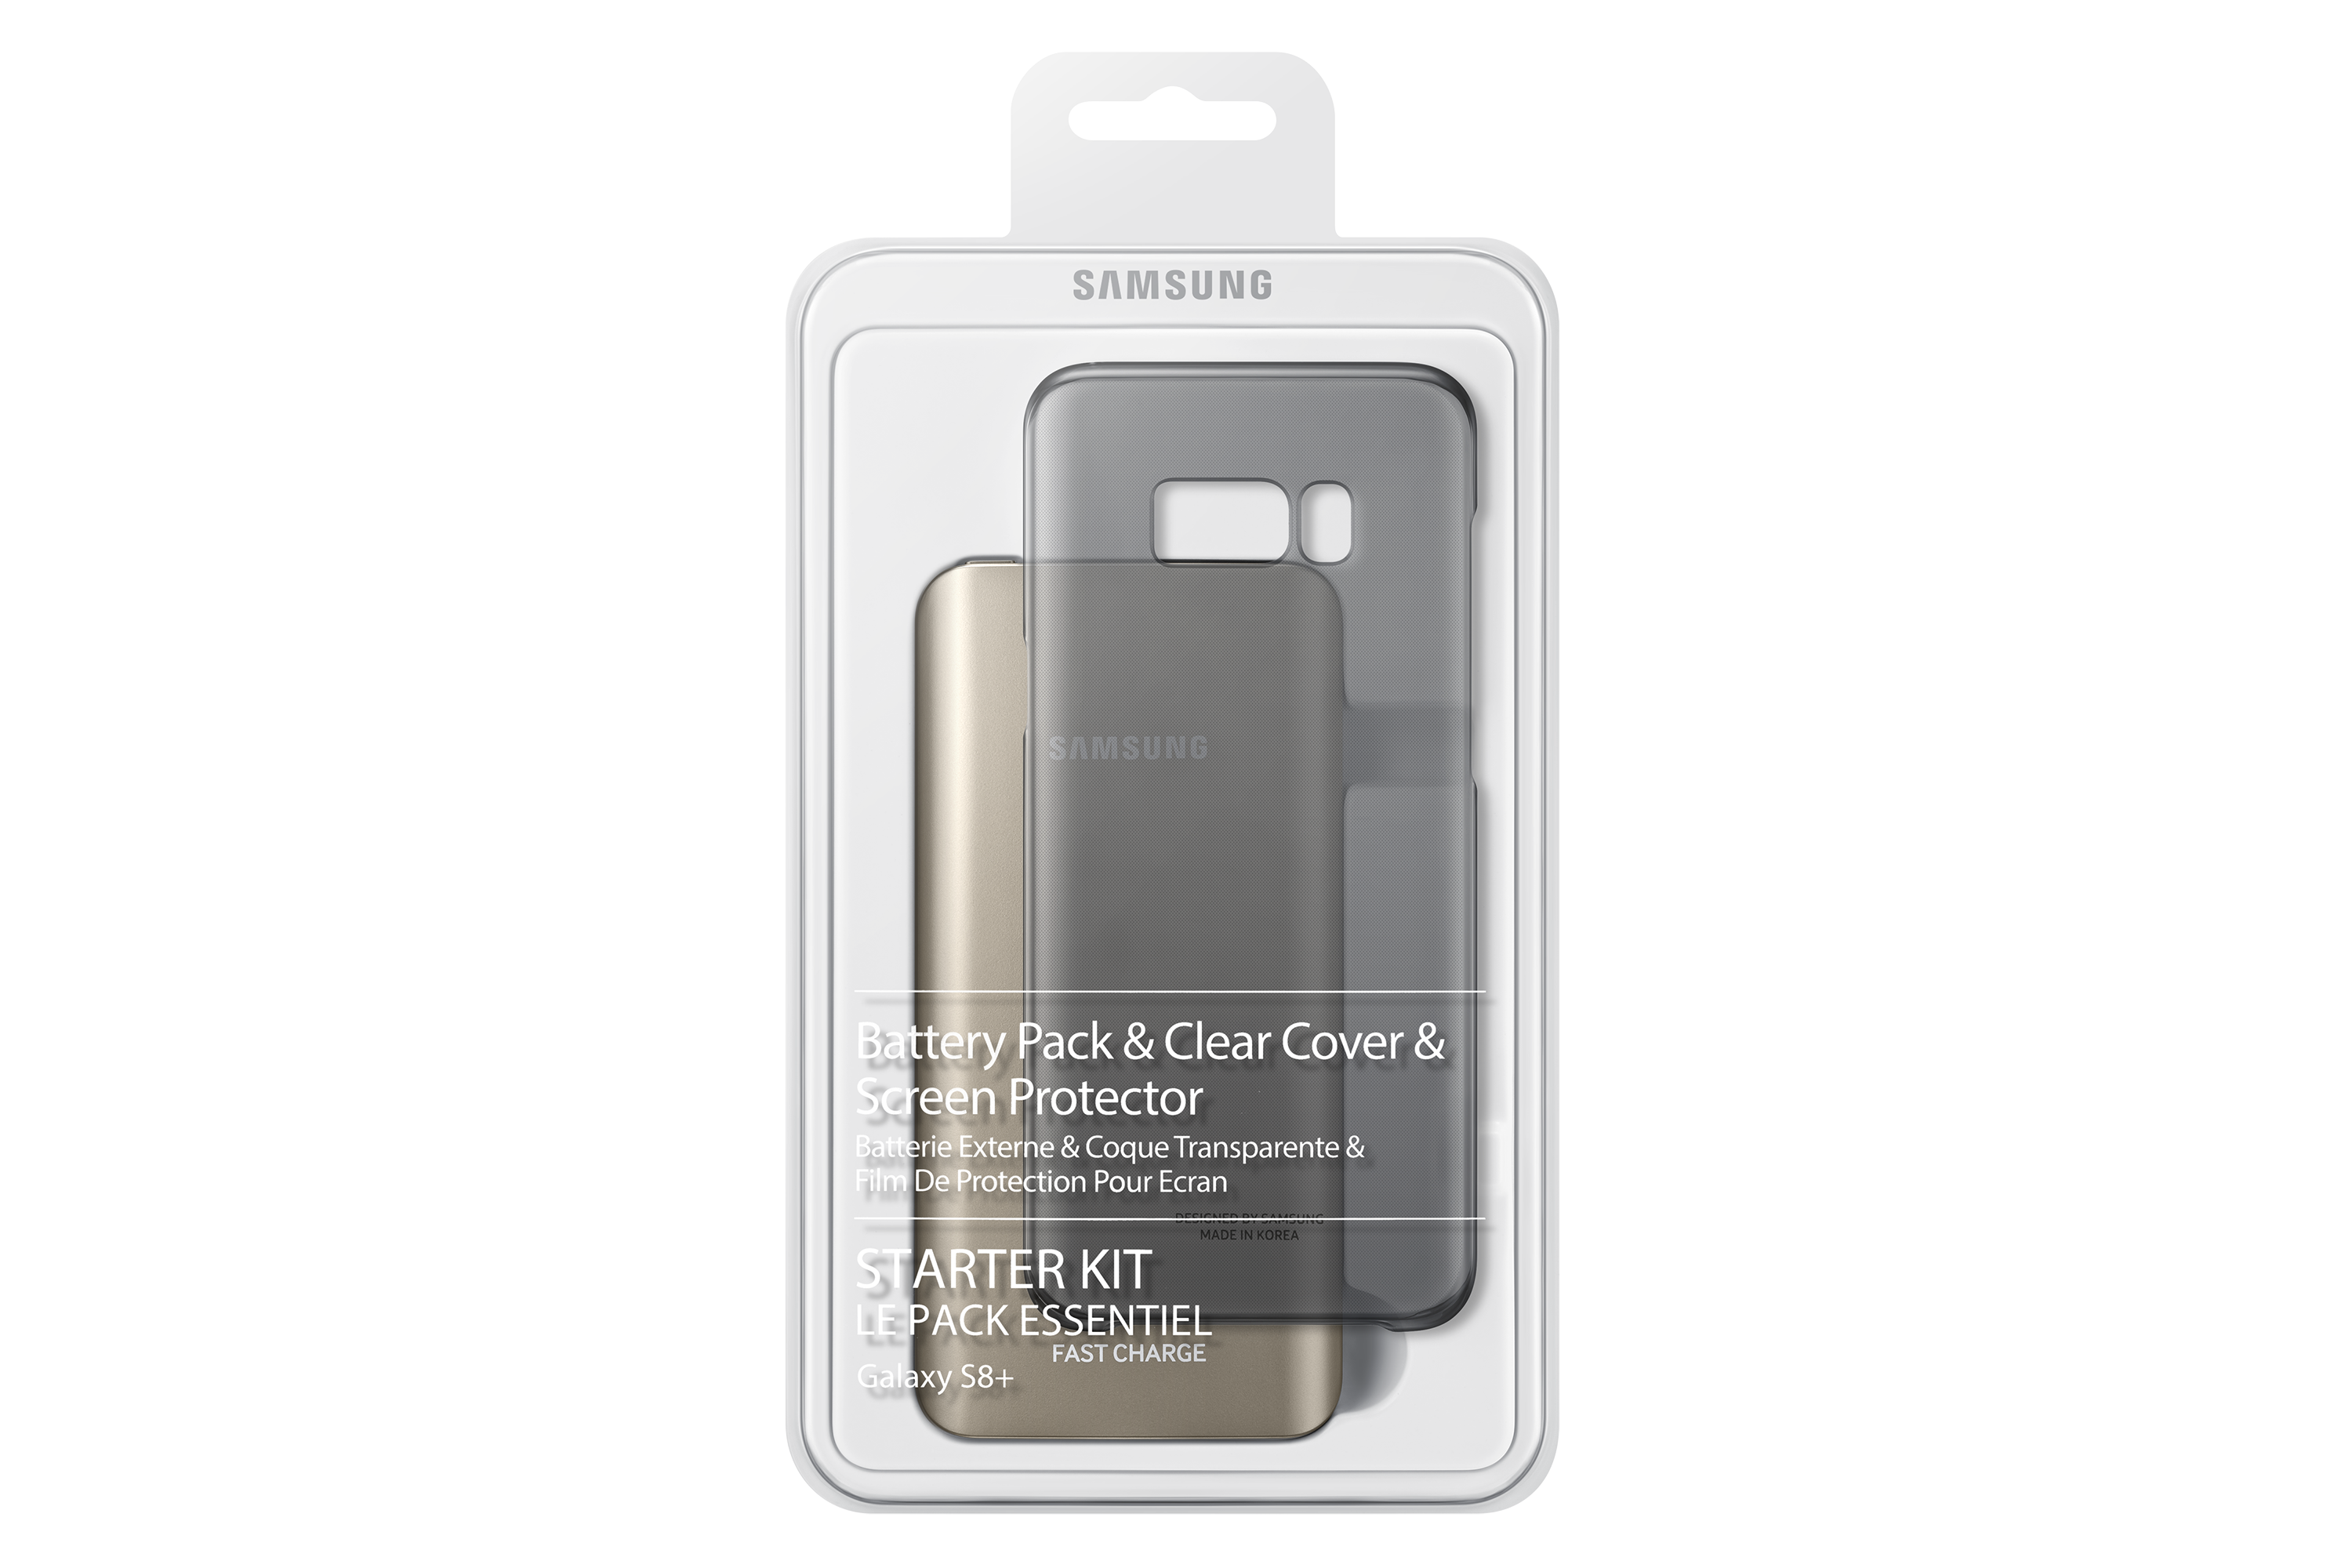 Starter Kit 1 - Galaxy S8+ Clear Cover + Screen Protector + 5.2Ah Battery Pack + C type gender